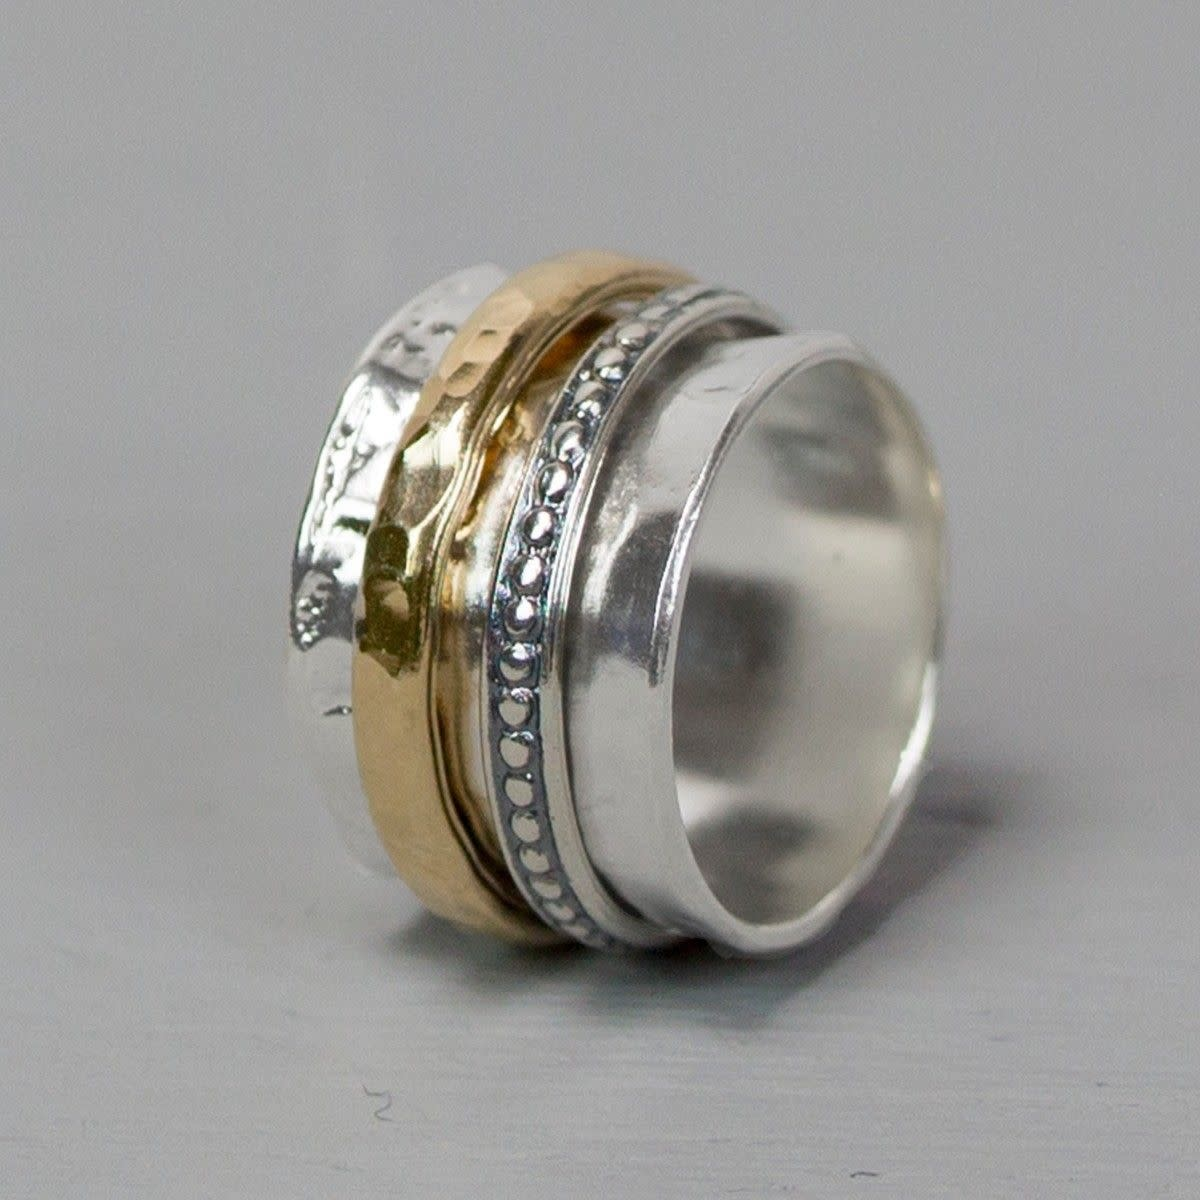 Ring Silver + Gold Filled 20099-11